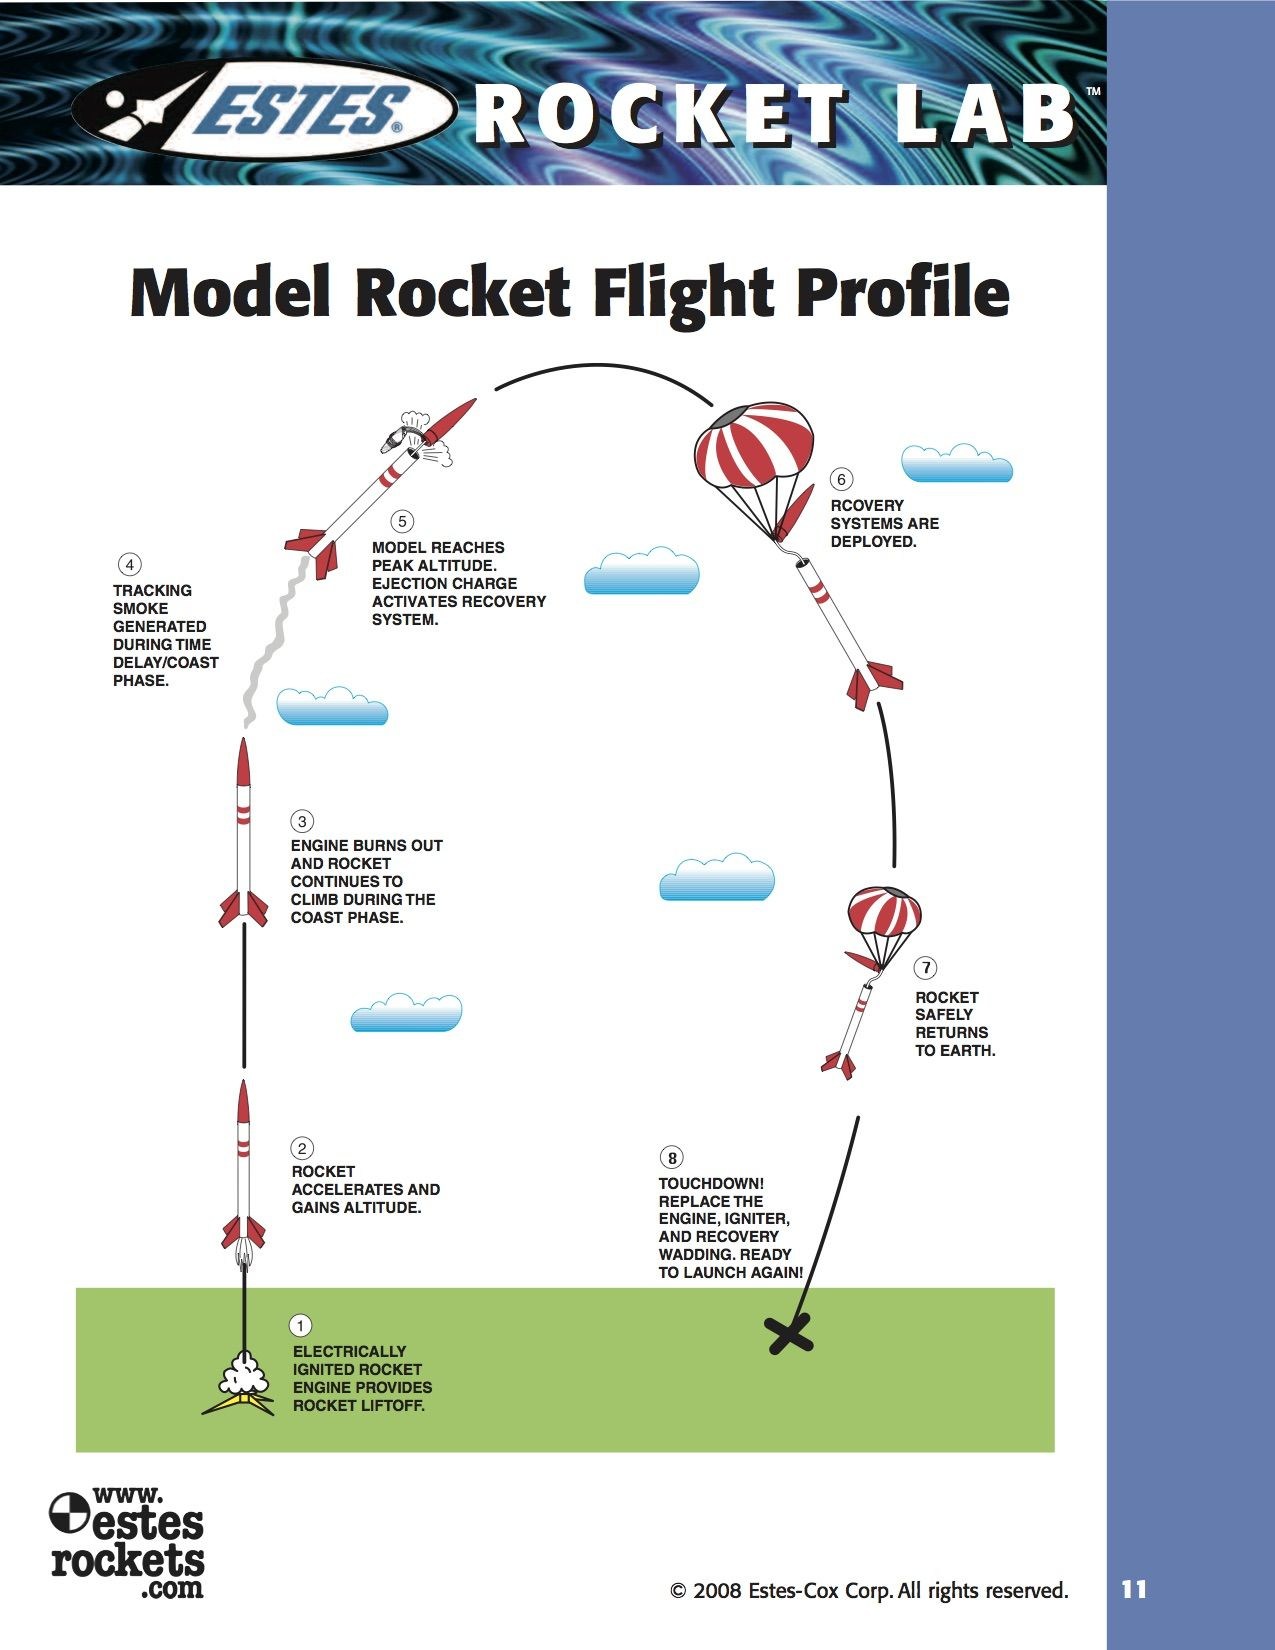 Model rocket flight profile electrically ignited rocket engine model rocket flight profile electrically ignited rocket engine provides rocket liftoff eocket accelerates and gains altitude engine burns out and rocket pooptronica Images